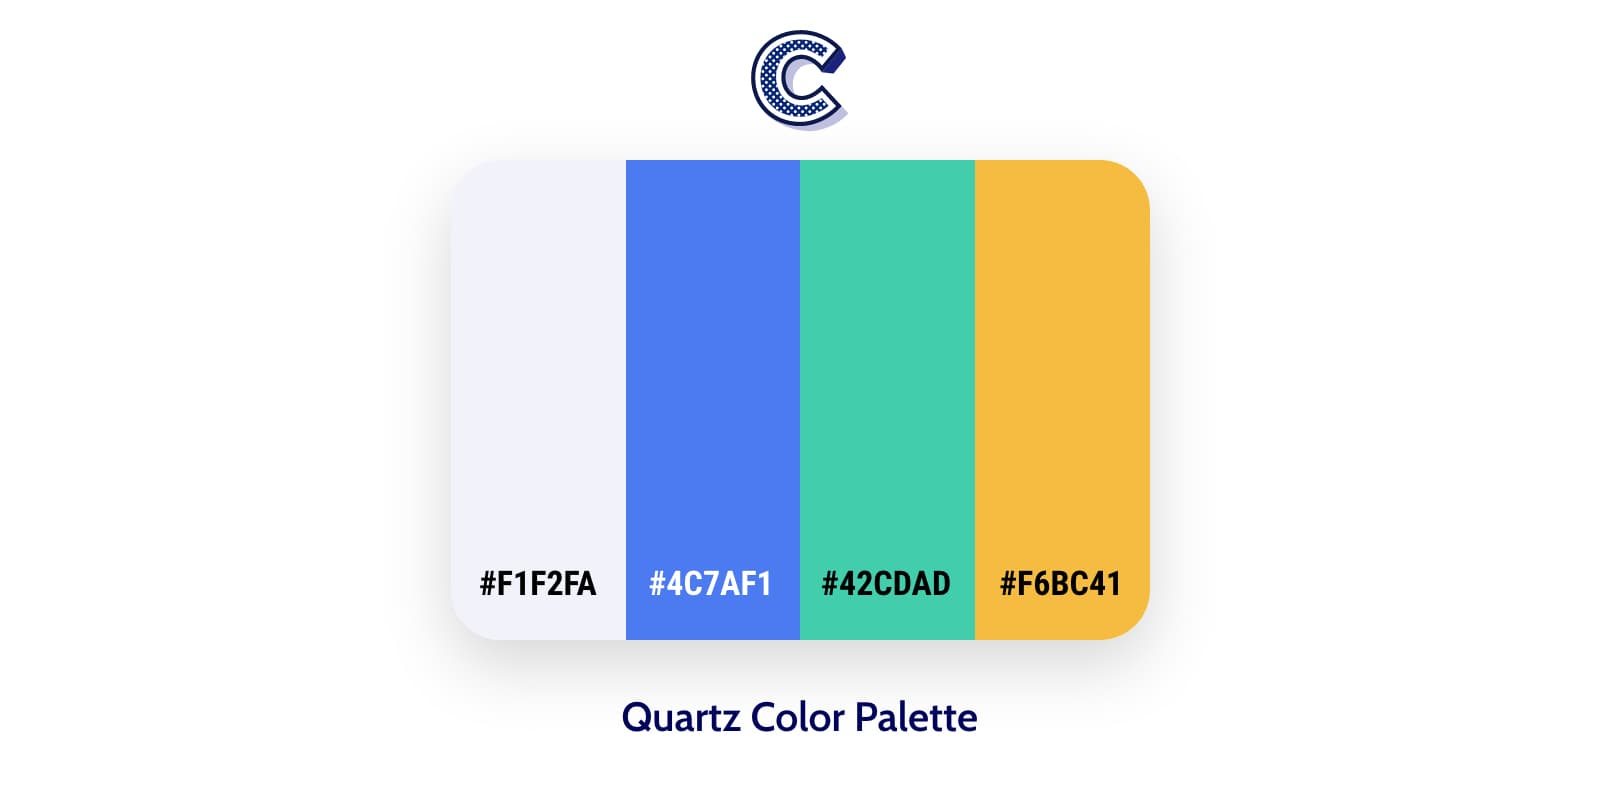 the featured image of quartz color palette